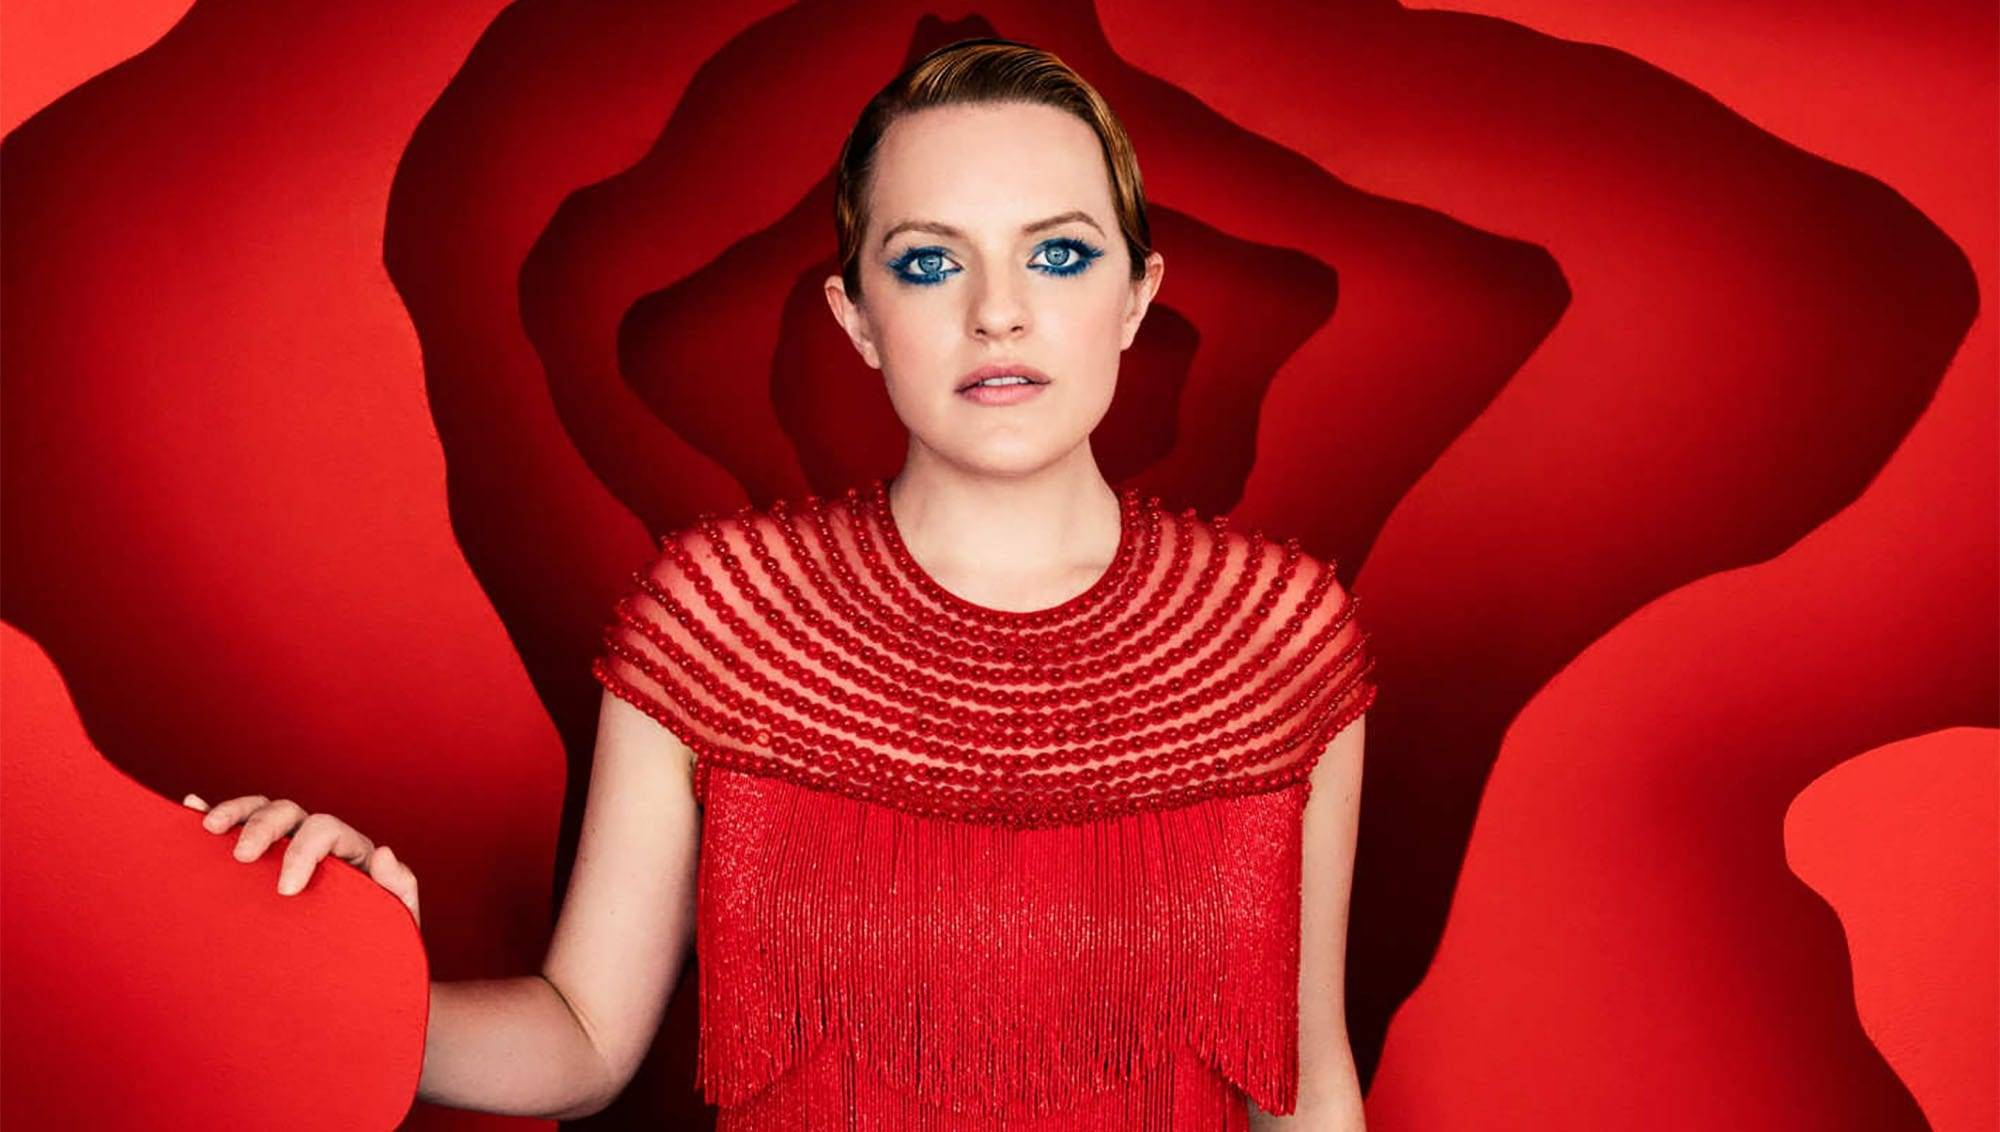 Elisabeth Moss Biography, Height, Weight, Age, Size, Family, Net Worth